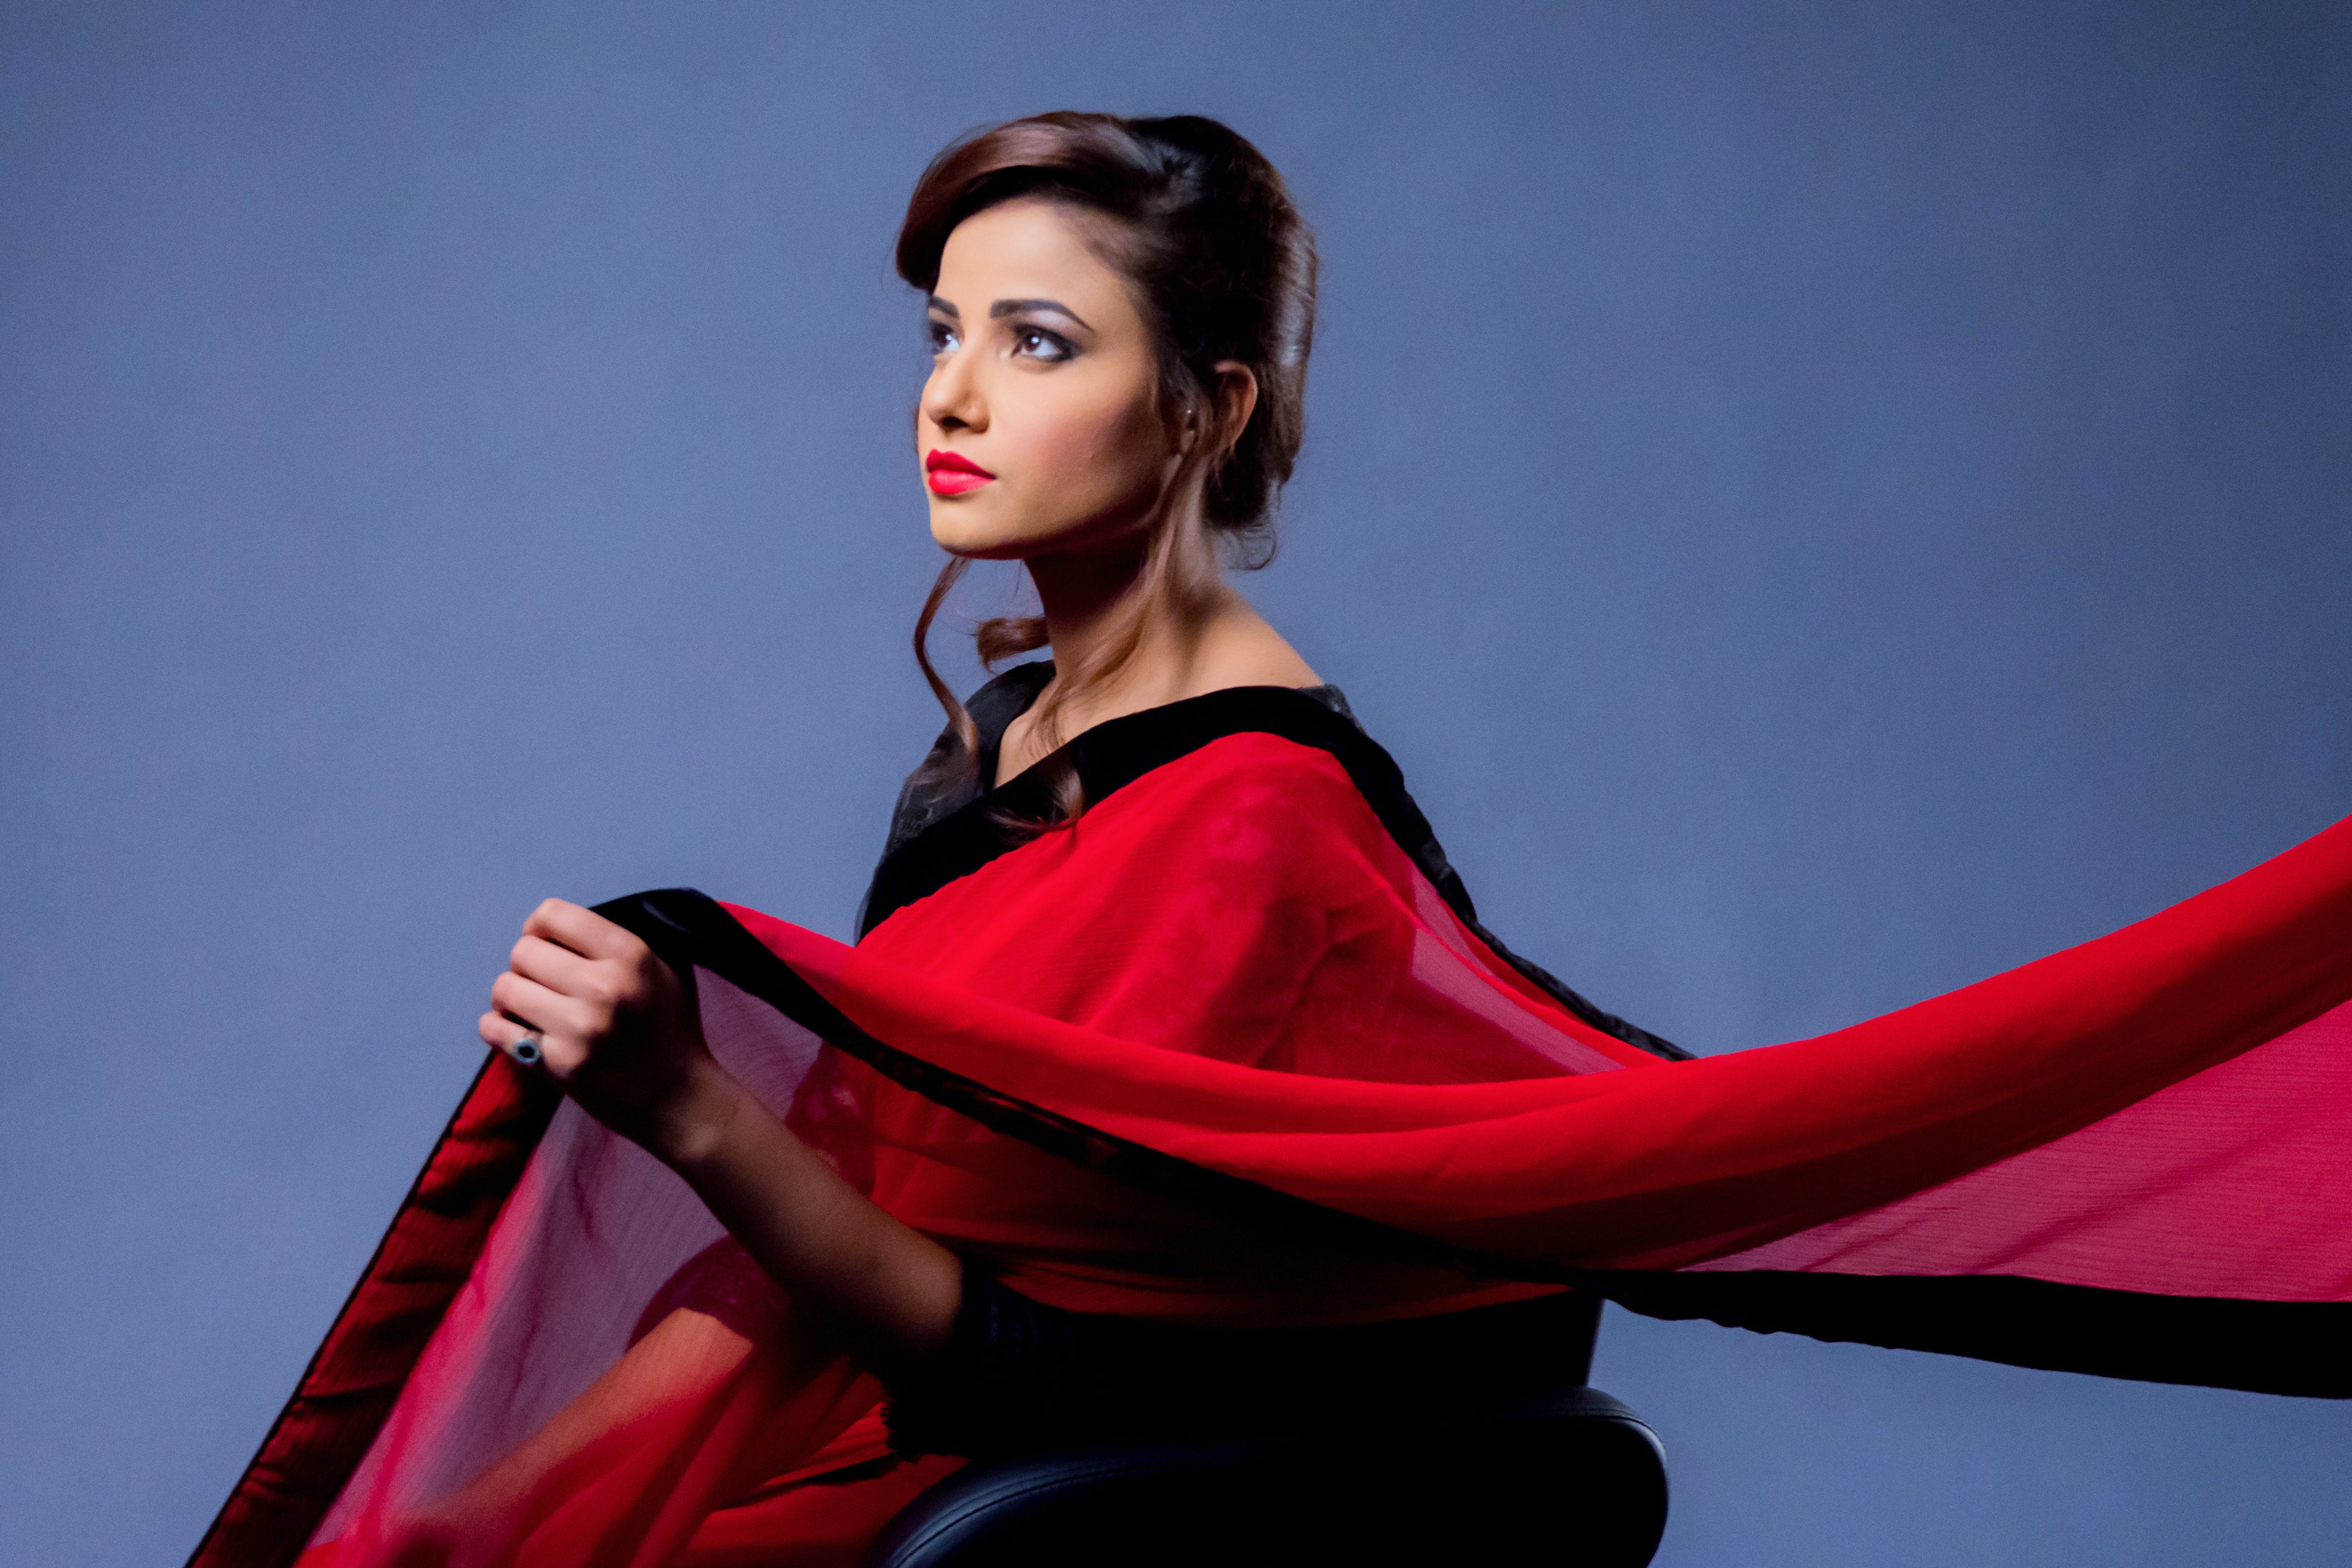 Woman Wearing Red and Black Saree Dress